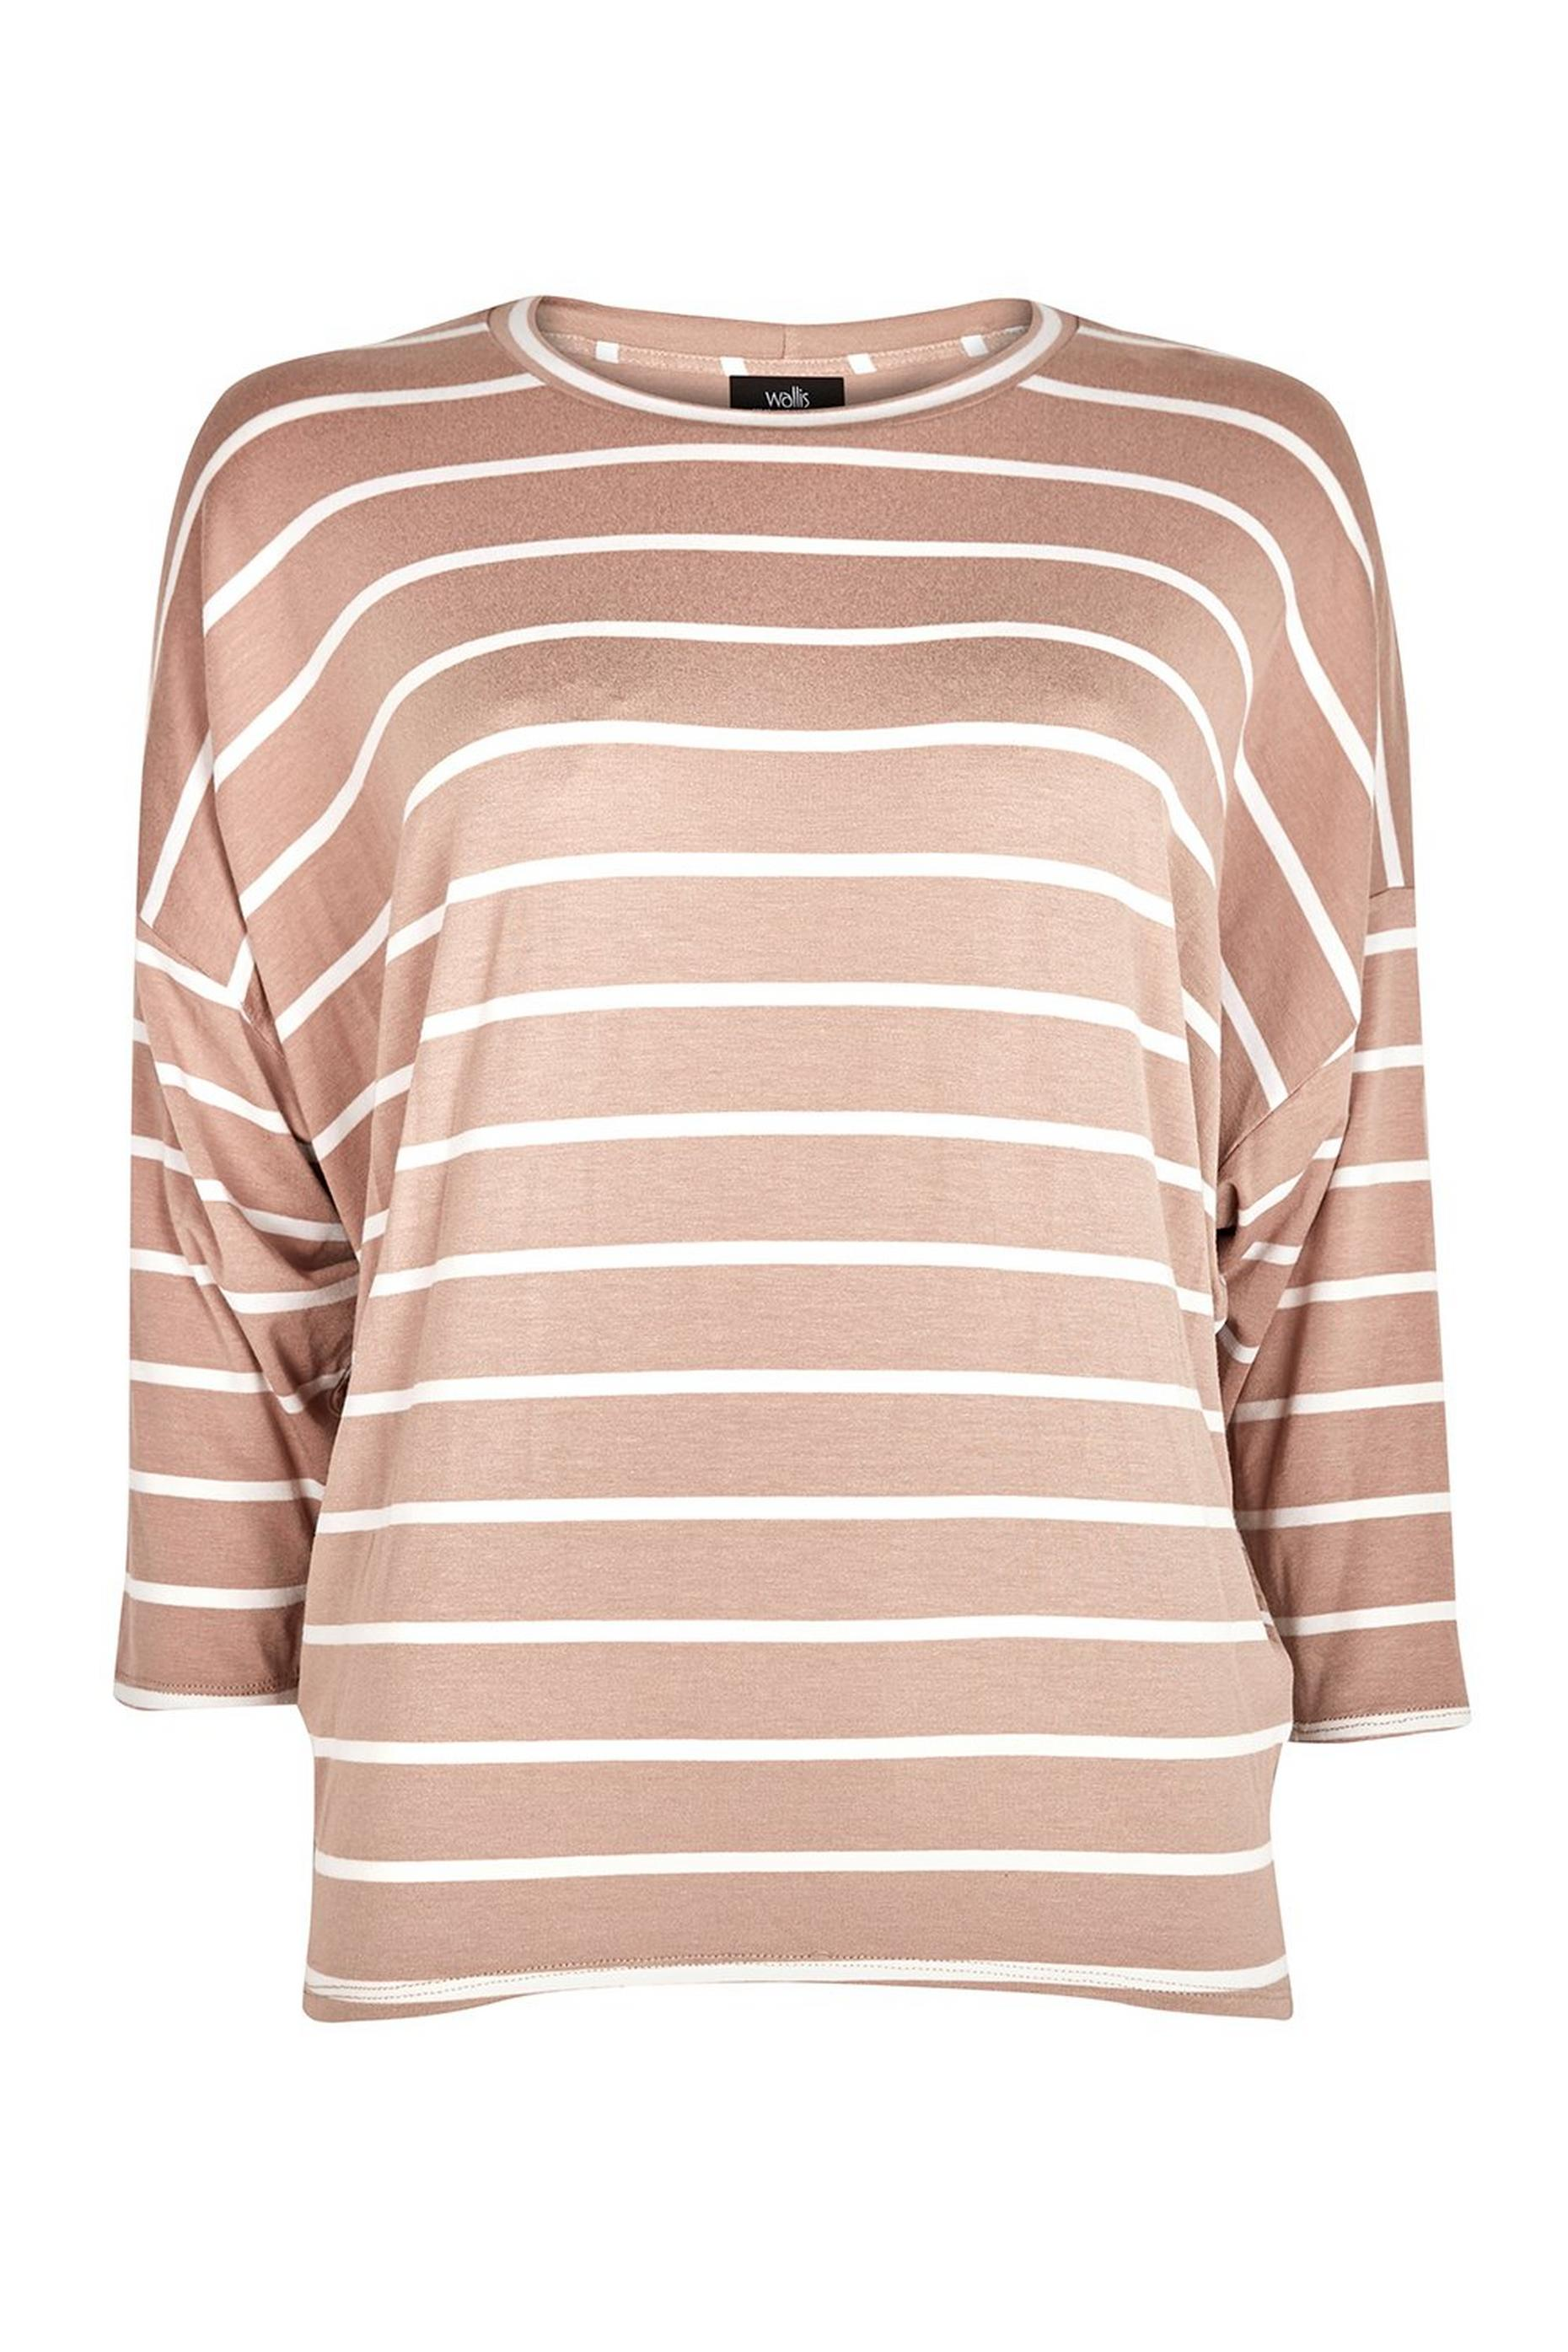 TALL Taupe Stripe Batwing Top